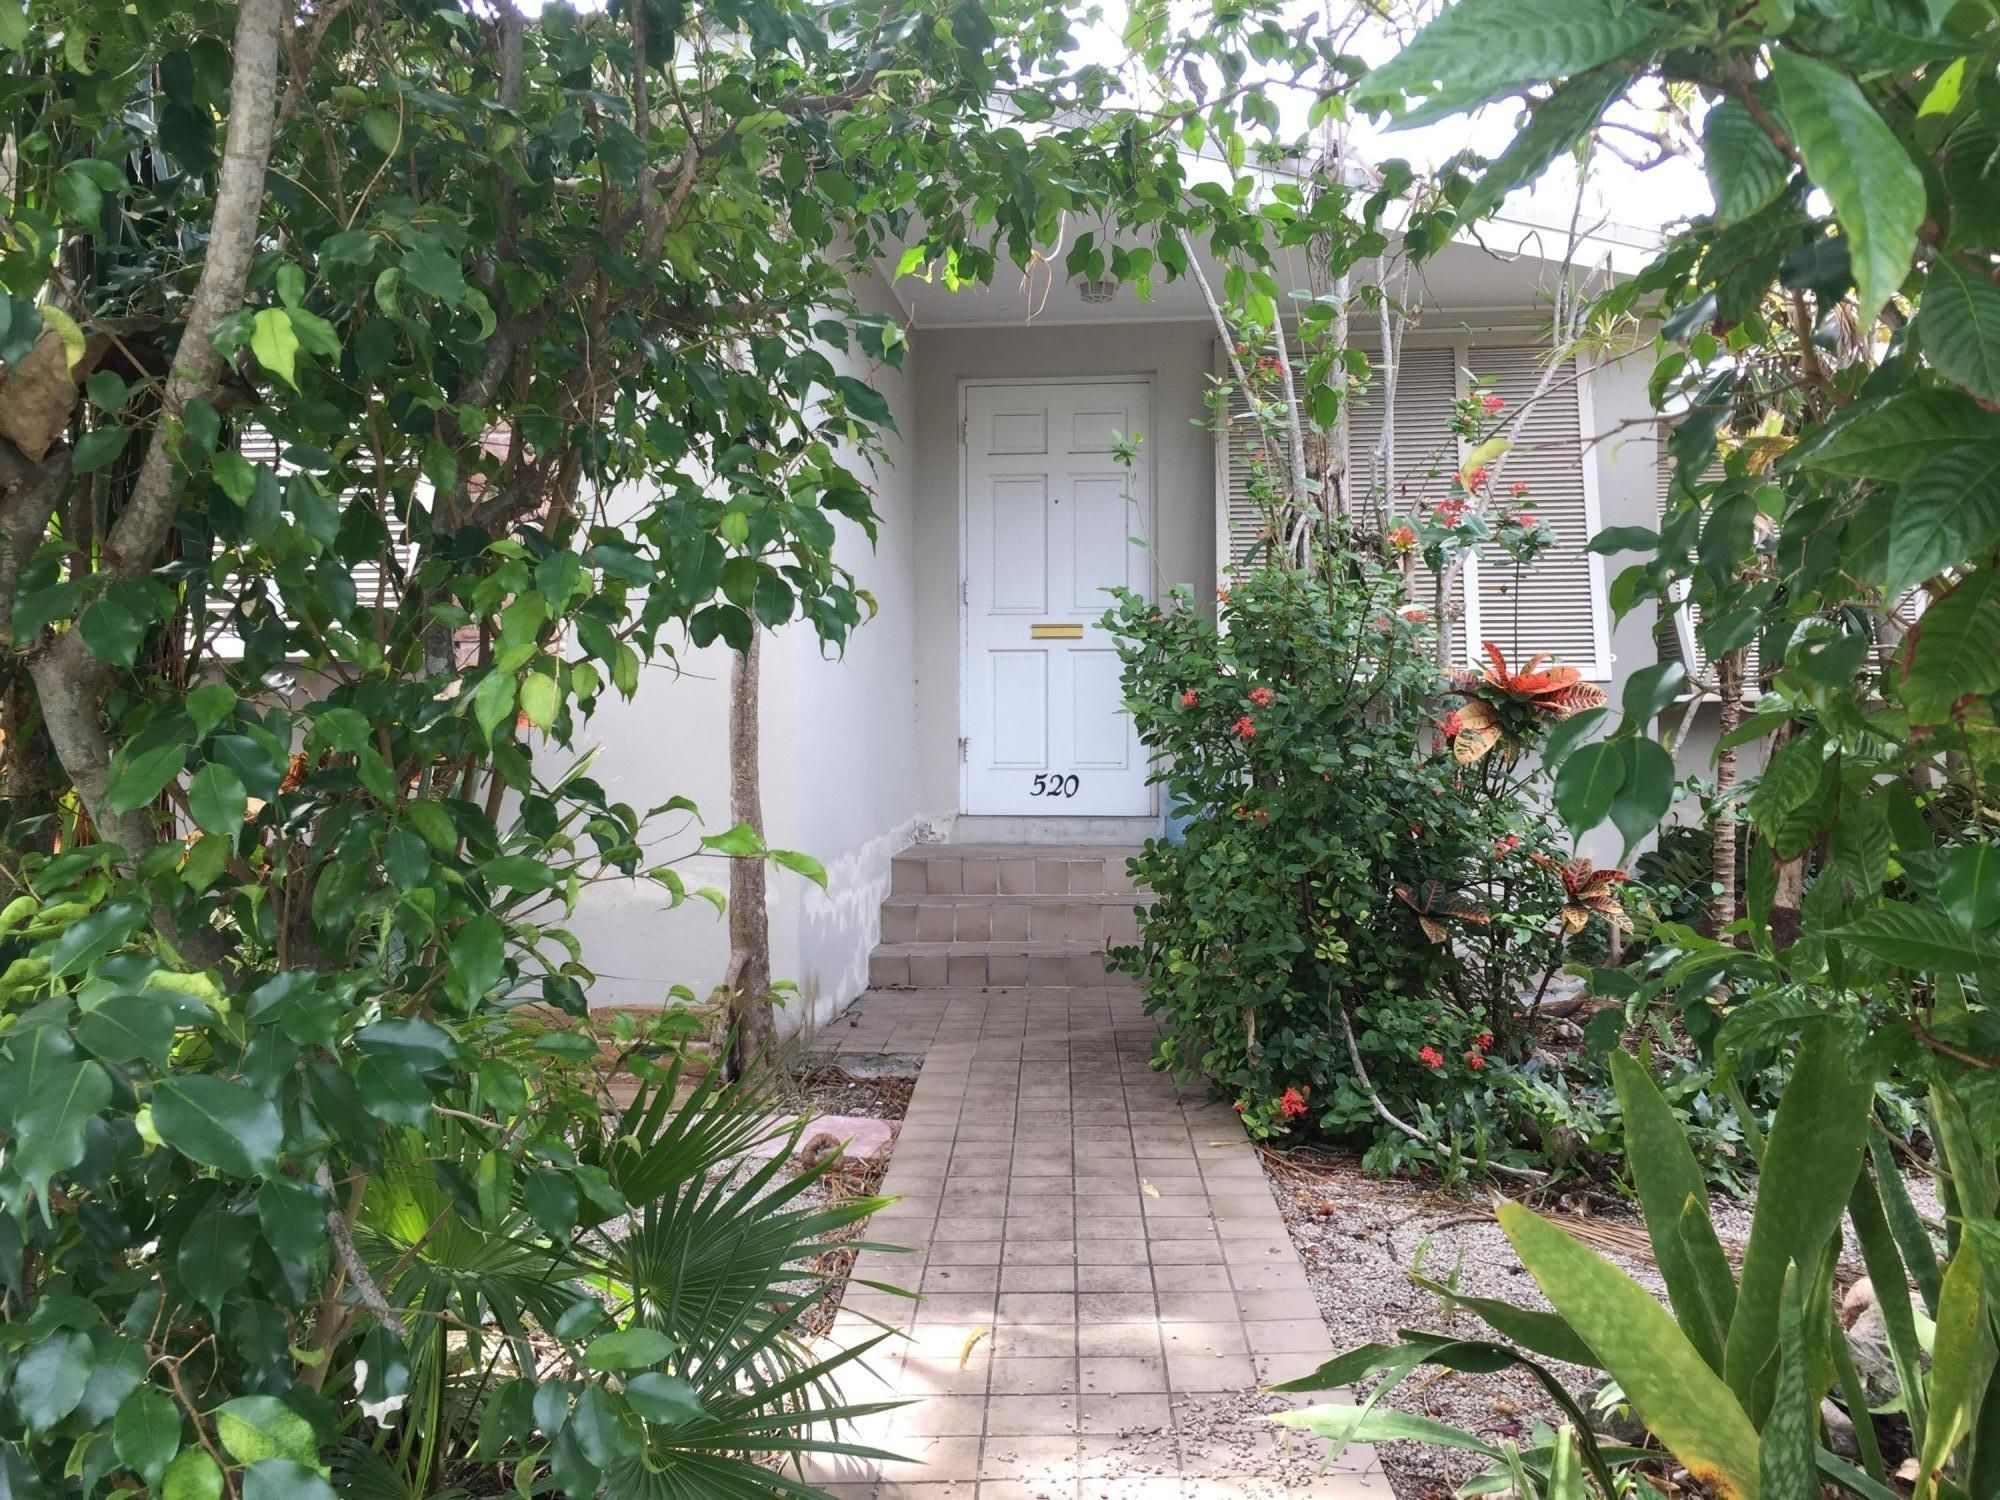 520 Grinnell St, Key West, Fl 33040 | Trulia pertaining to The Green House Garden Key West